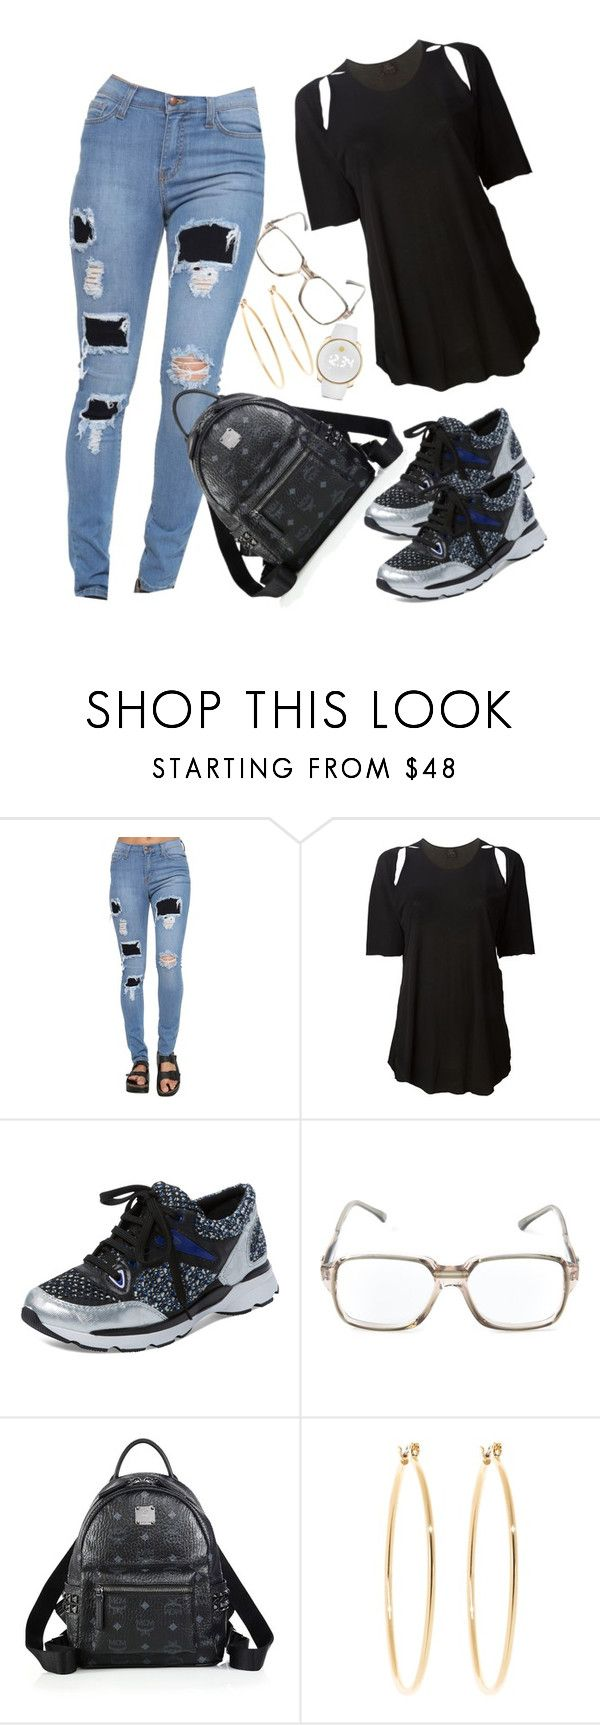 """""""..."""" by f0revermay132 ❤ liked on Polyvore featuring Lost & Found, Schutz, Yves Saint Laurent, MCM, Brooks Brothers and Movado"""